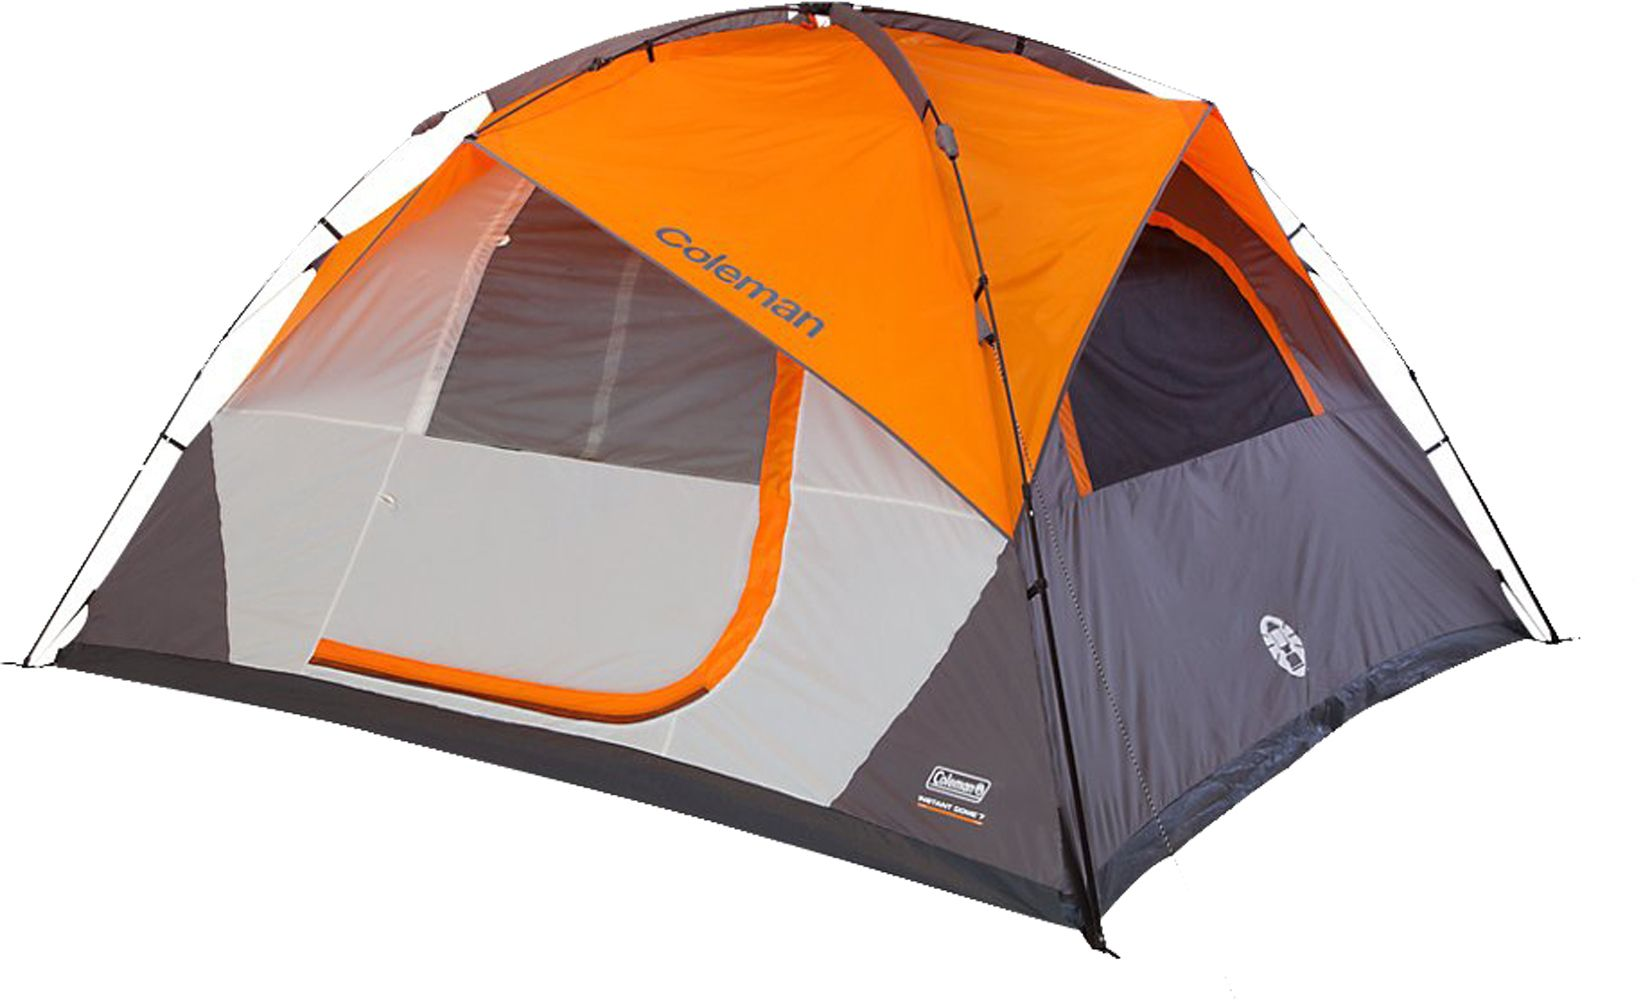 Product Image · Coleman Signature Instant Dome 7 Person Tent with Integrated Fly  sc 1 st  DICKu0027S Sporting Goods & Coleman Tents | Best Price Guarantee at DICKu0027S